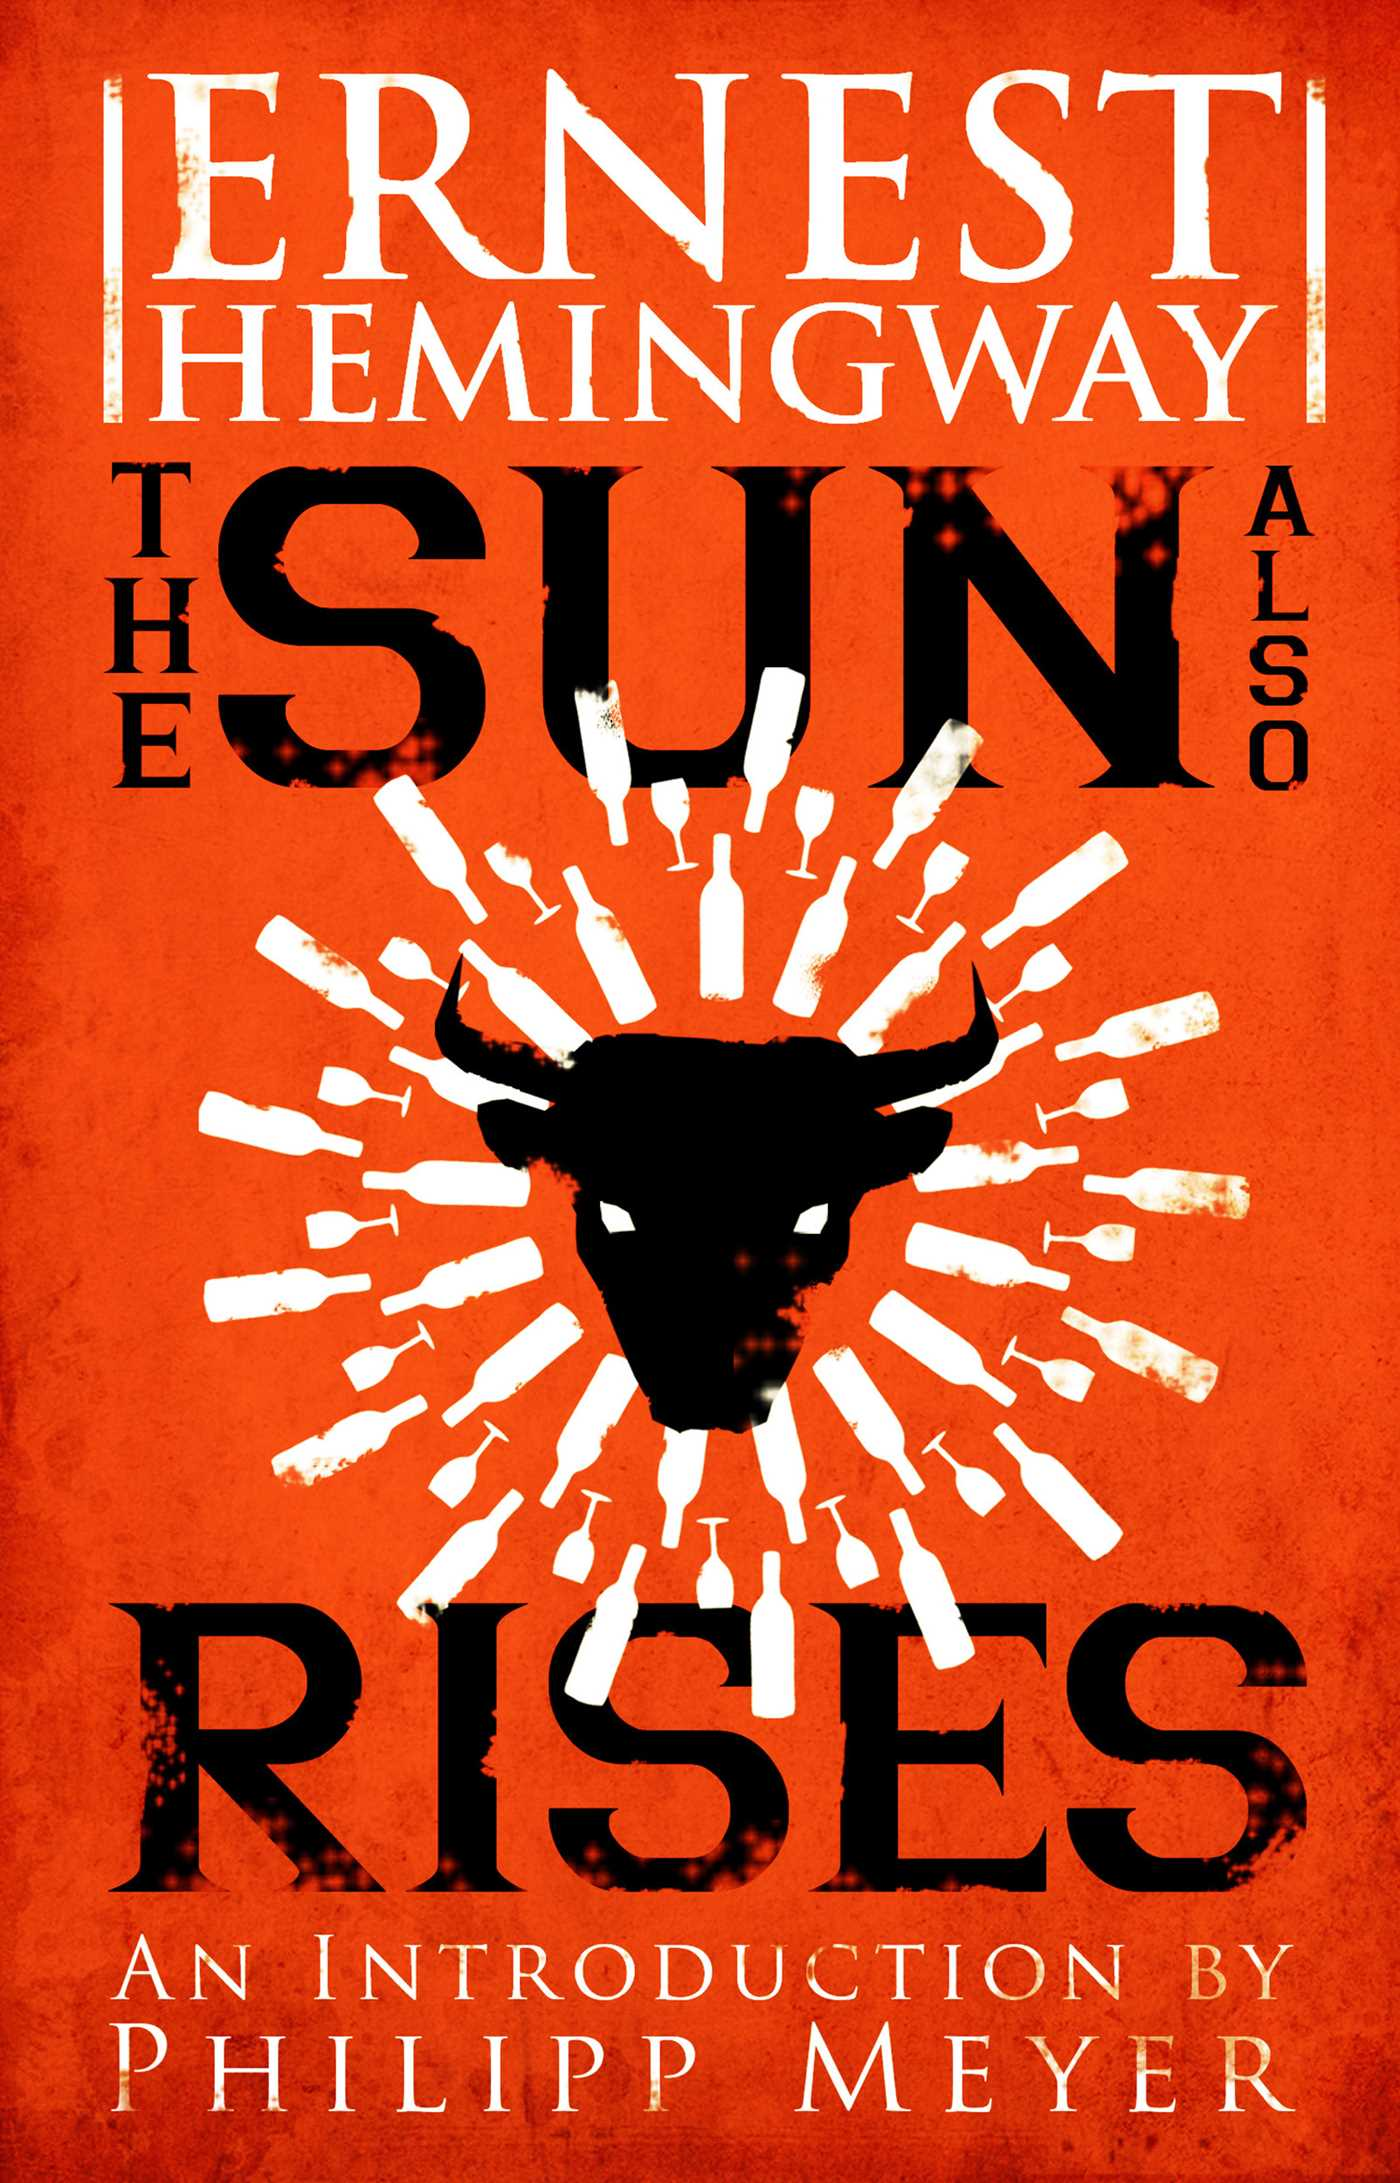 New Edition, Old Problems: On Hemingway's The Sun Also Rises